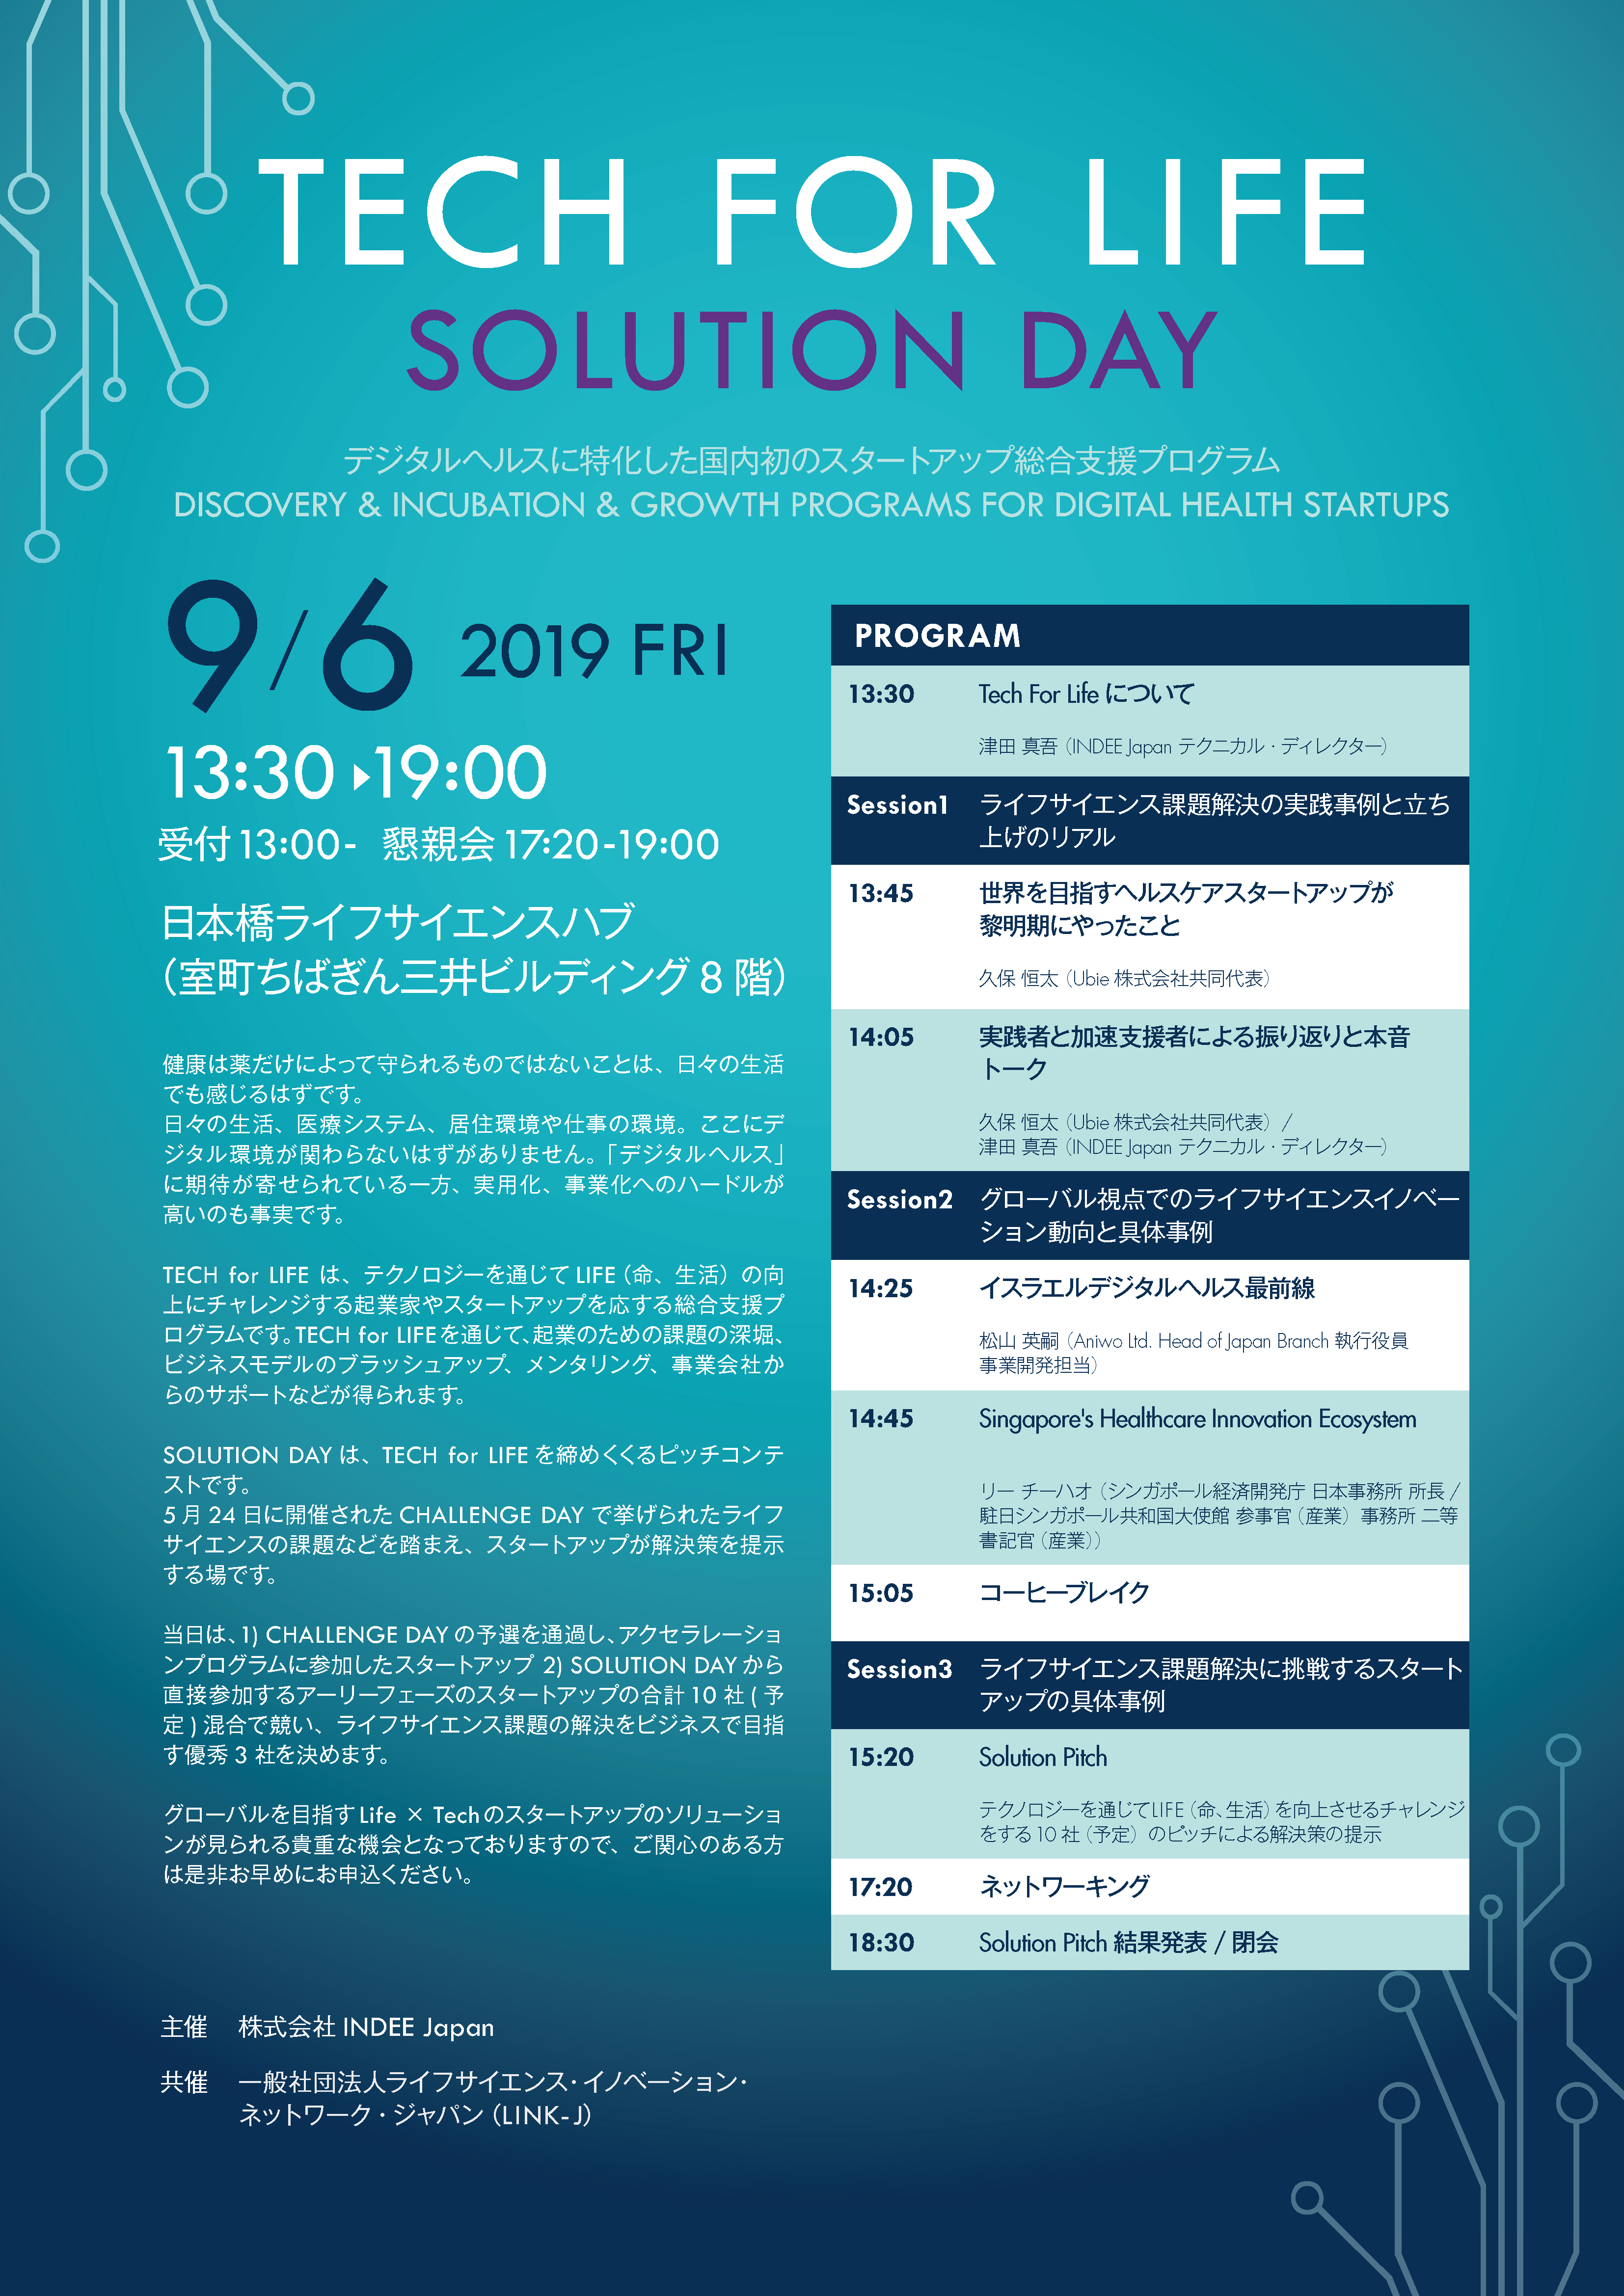 SolutionDayフライヤー_1 _ページ_1.png